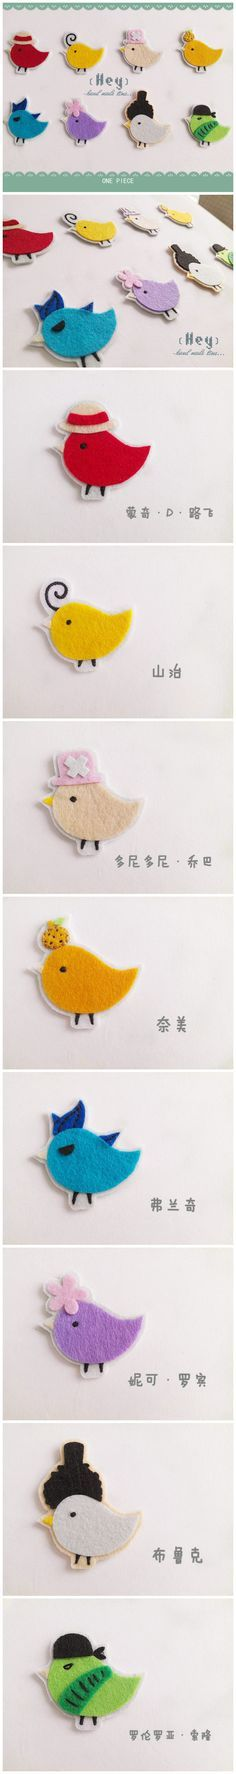 One Piece felt birds <3